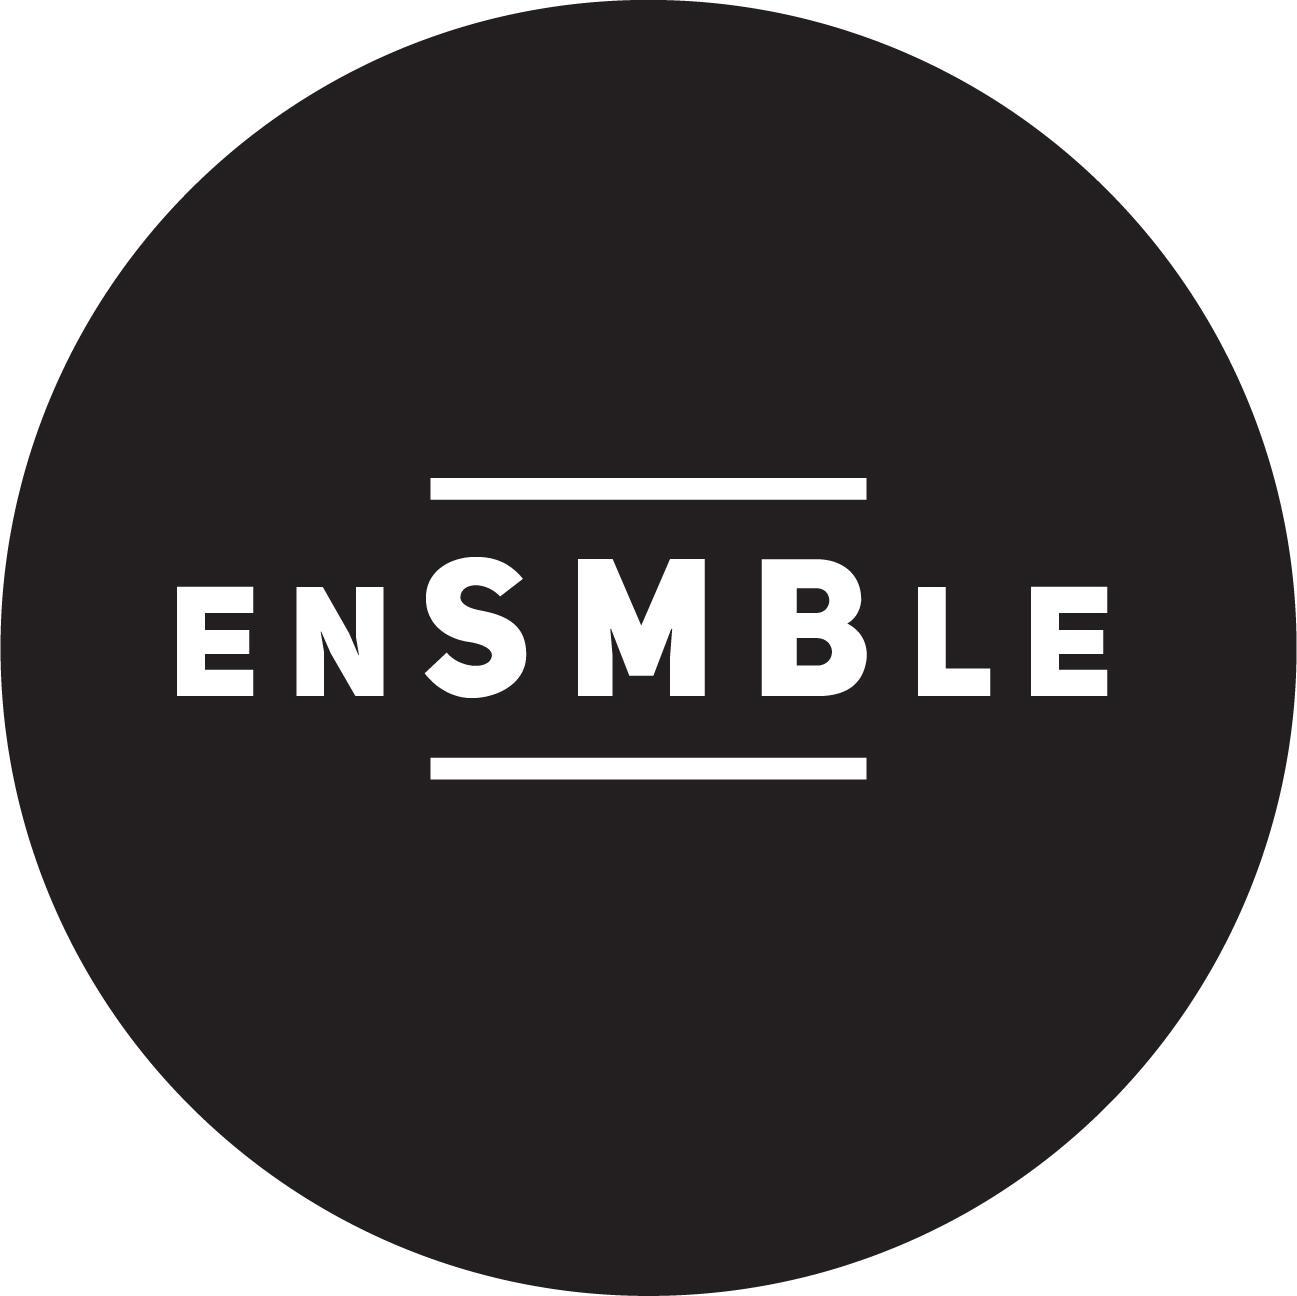 3nSMBle Marketing